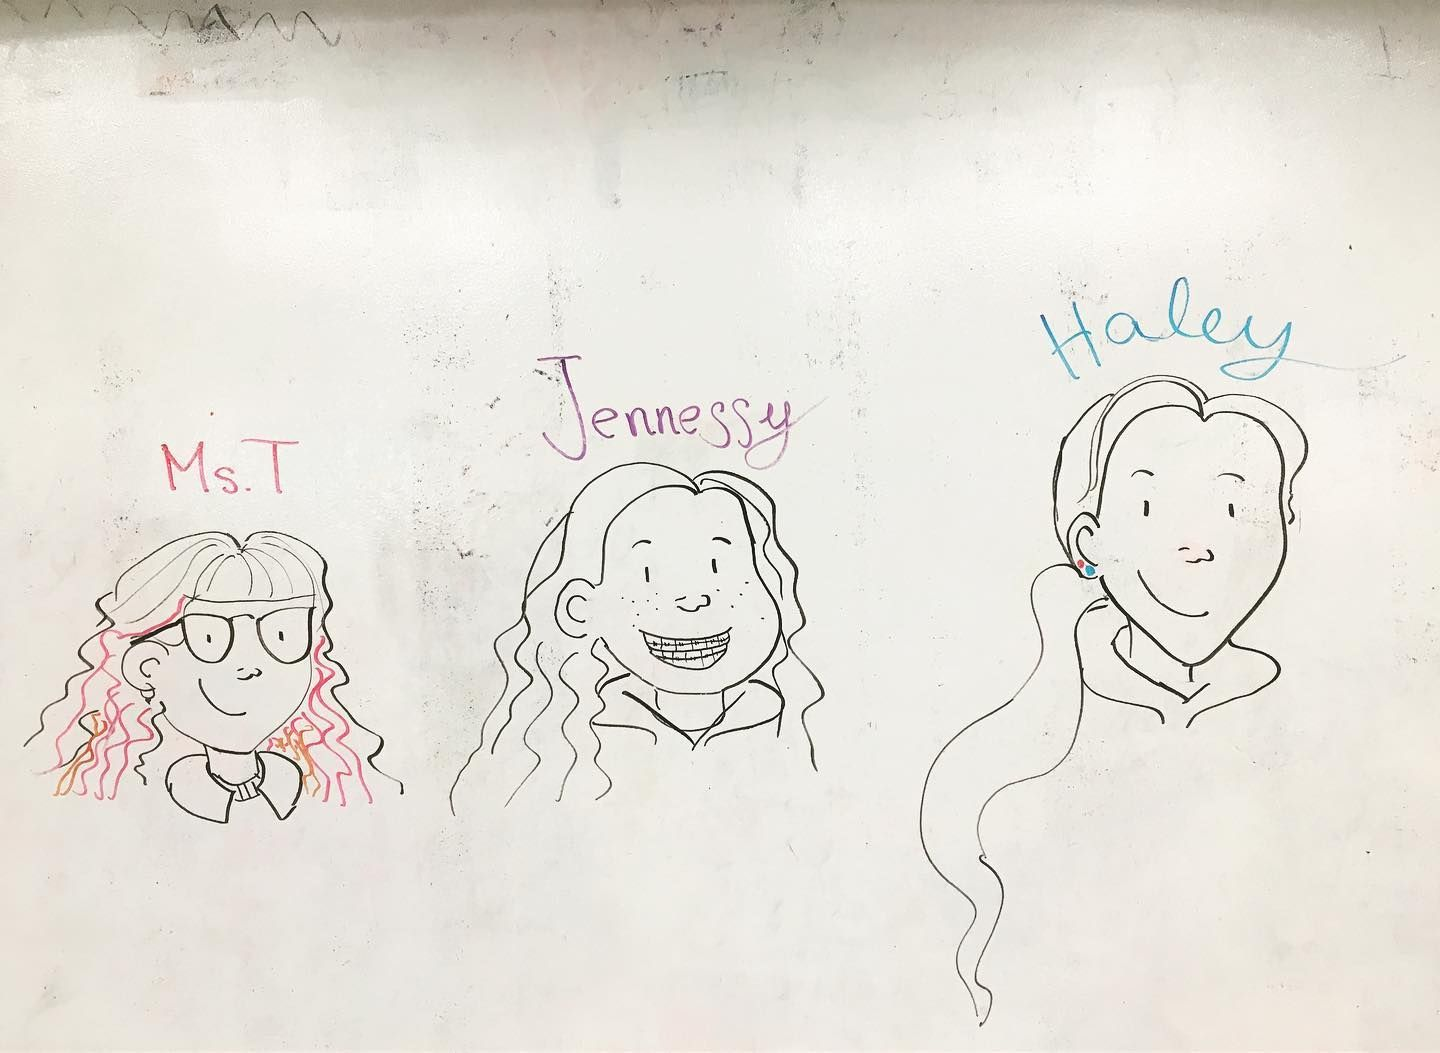 Had So Much Fun This Morning With The Whiteboard Wall In The